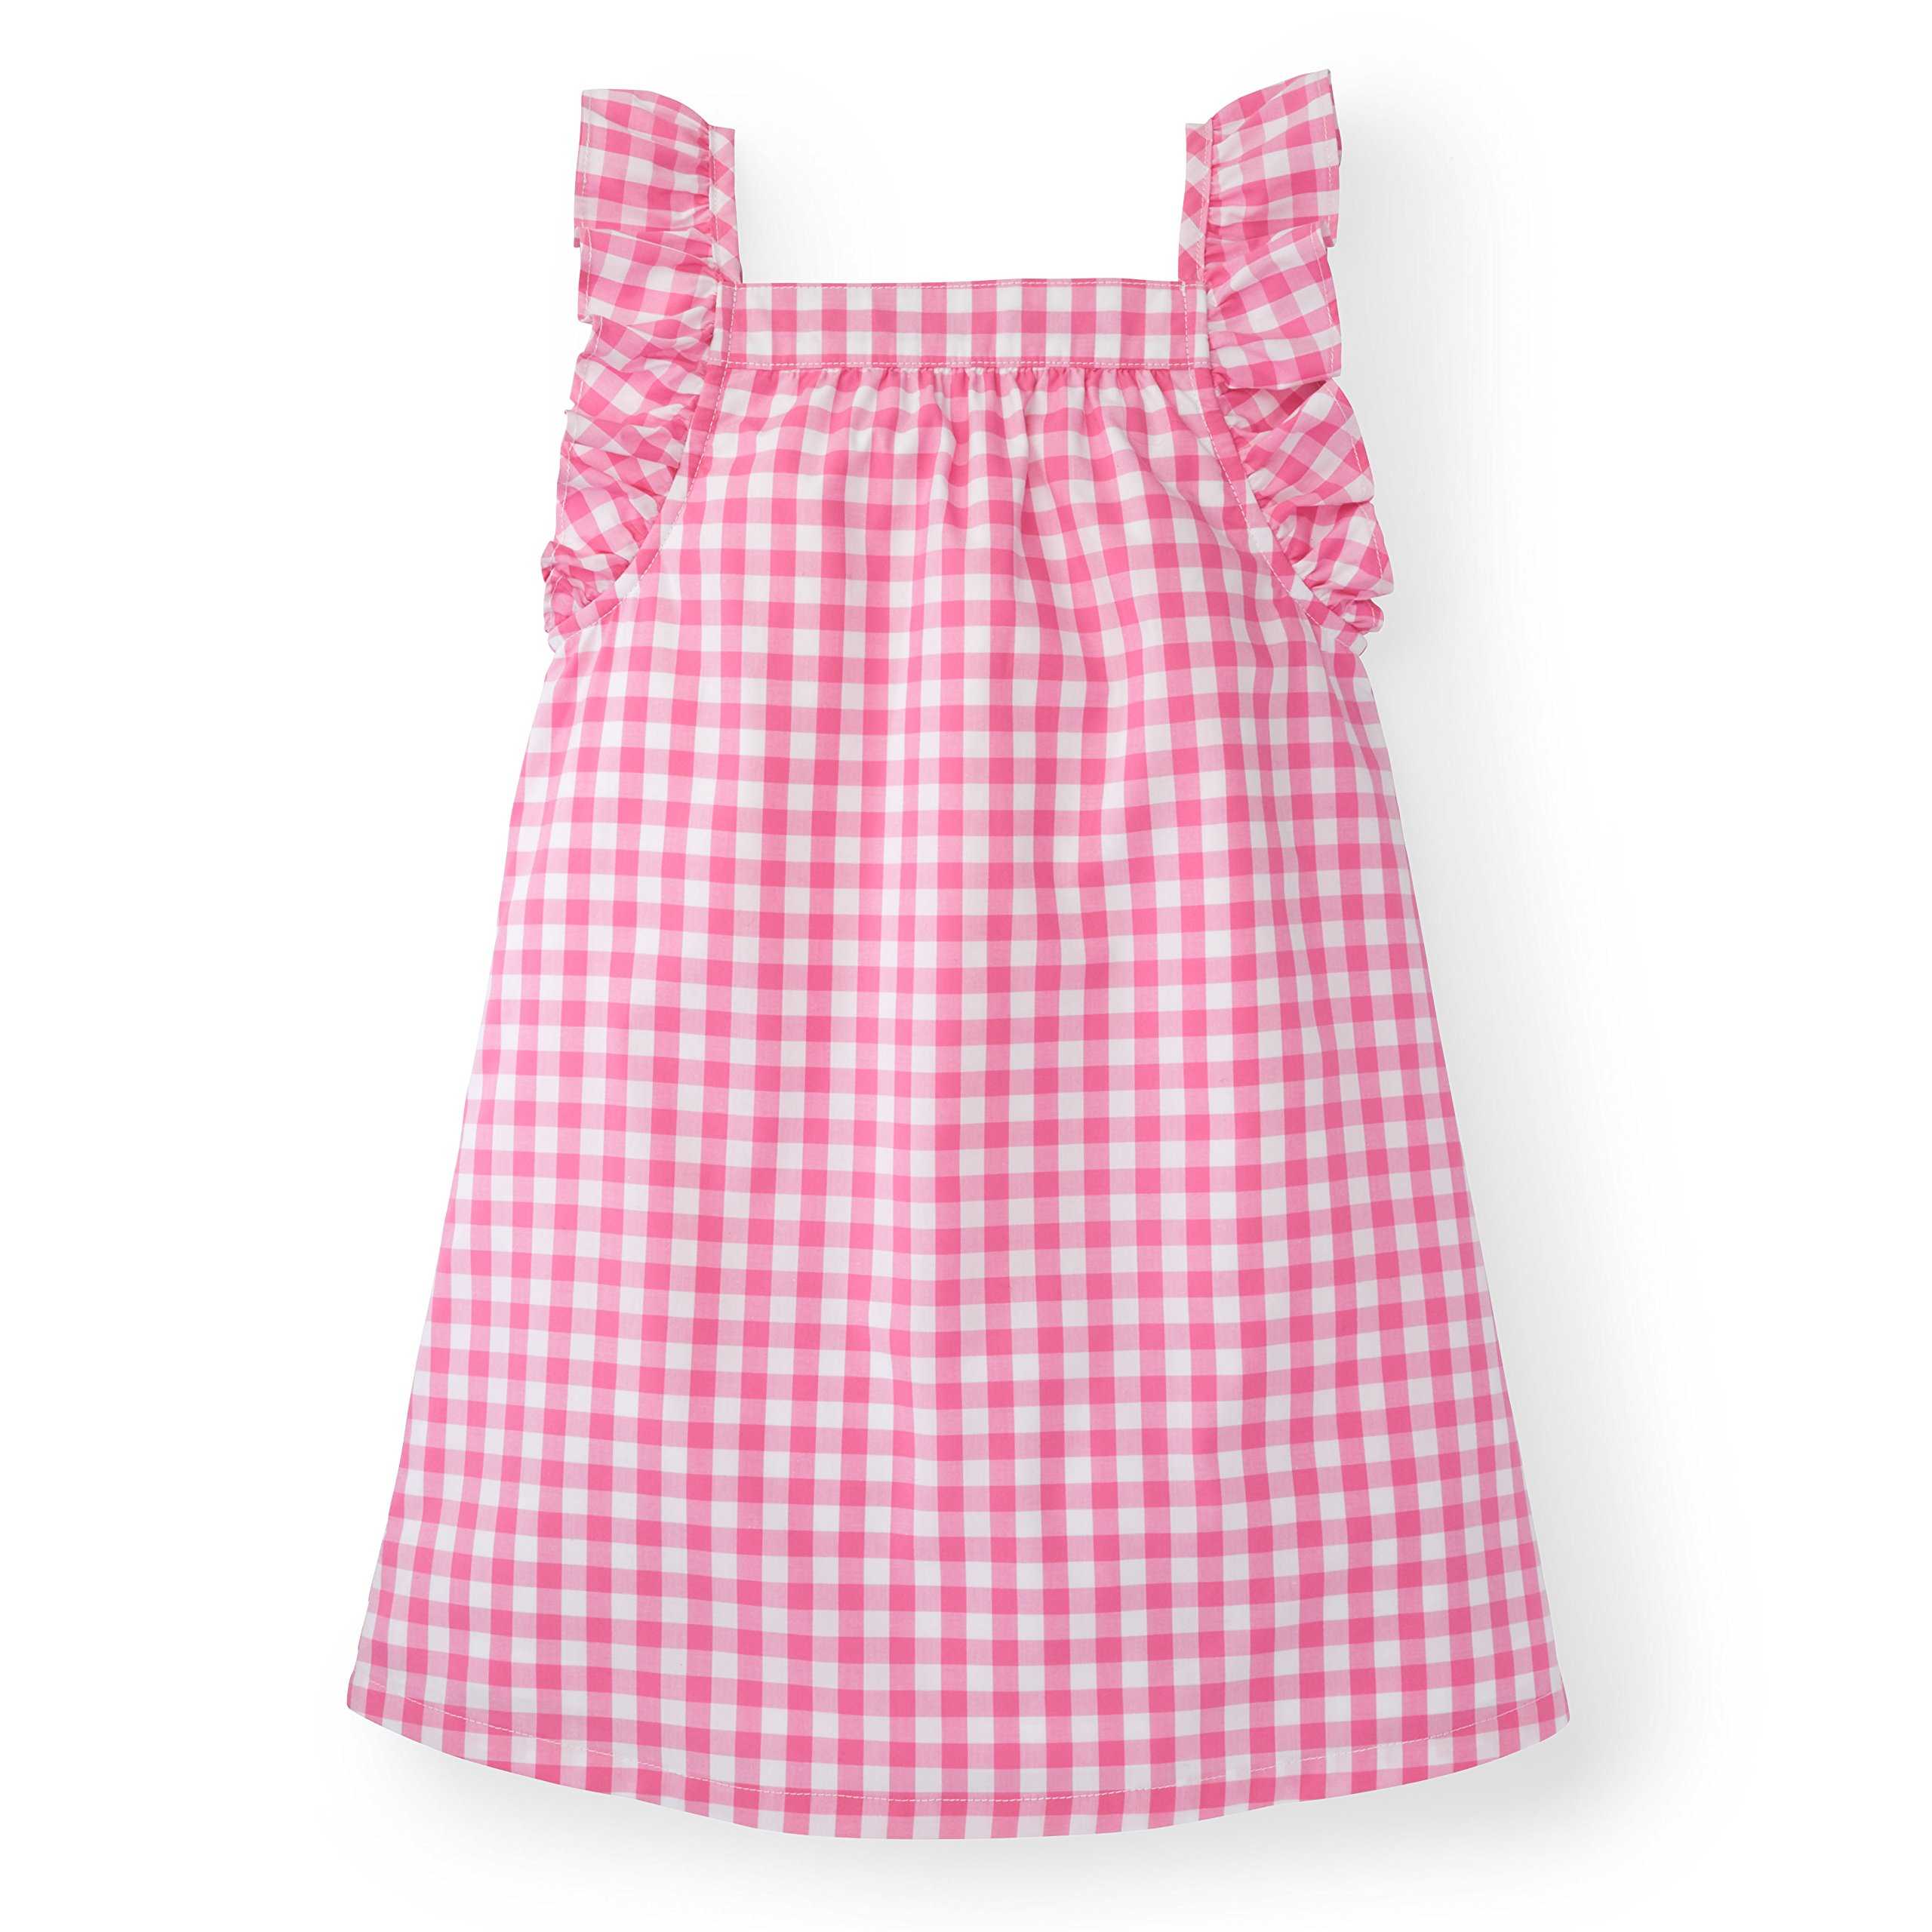 Hope & Henry Girls' Pink Gingham Frill Sleeve Woven Dress Made with Organic Cotton by Hope & Henry (Image #1)